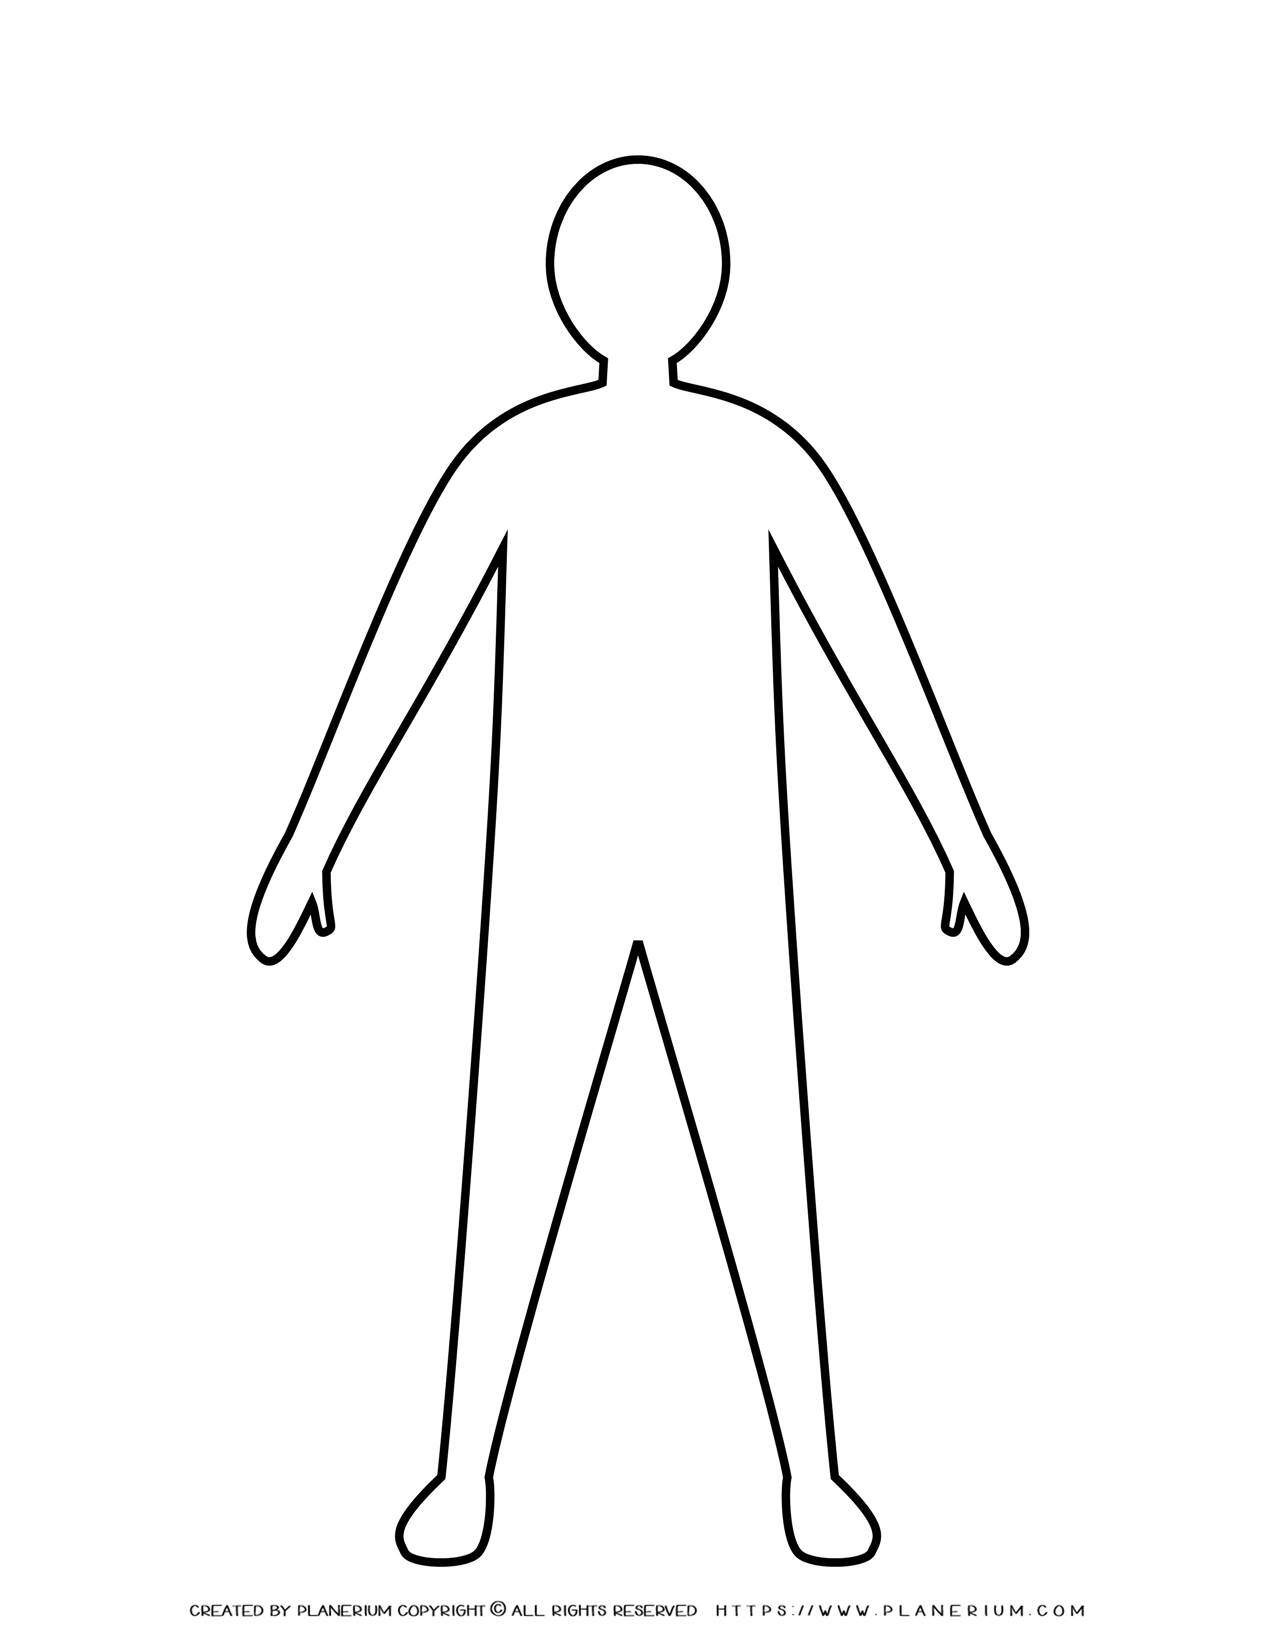 Man Standing With Open Arms Silhouette Outline | Planerium